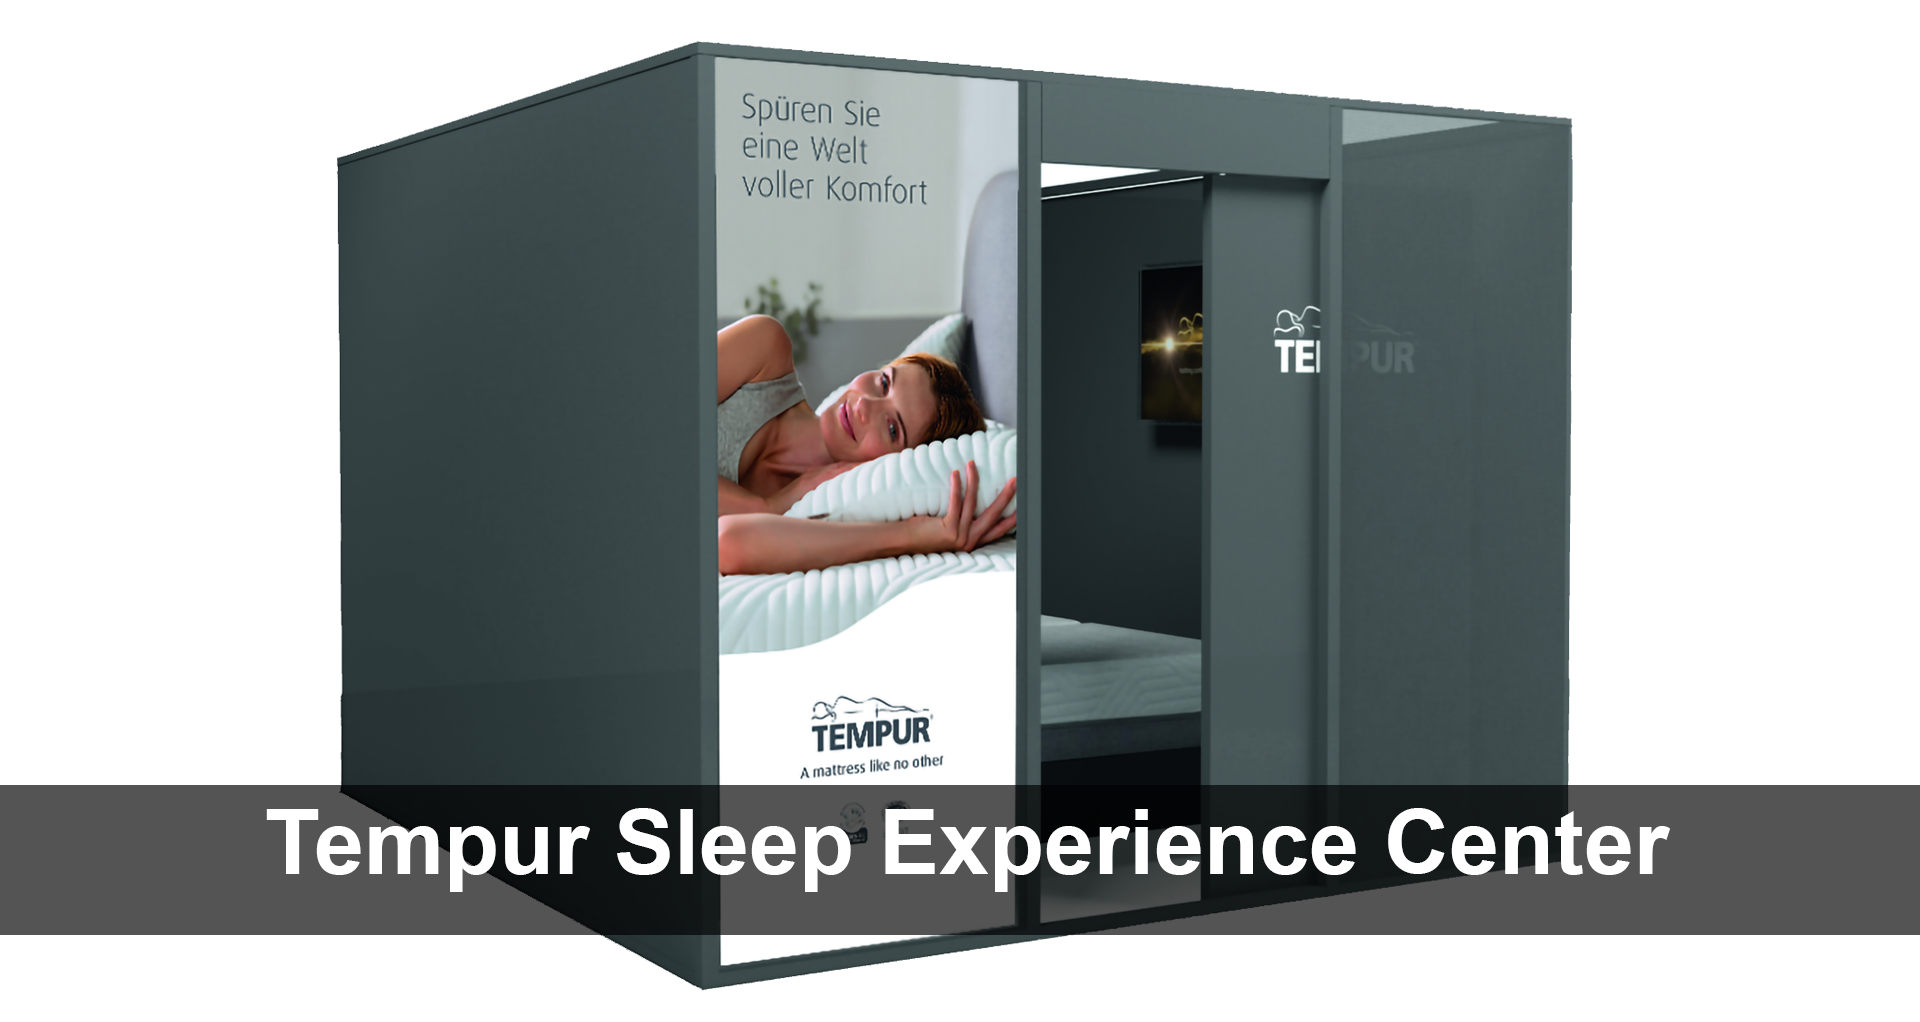 Tempur Sleep Experience Center Schlafkabine